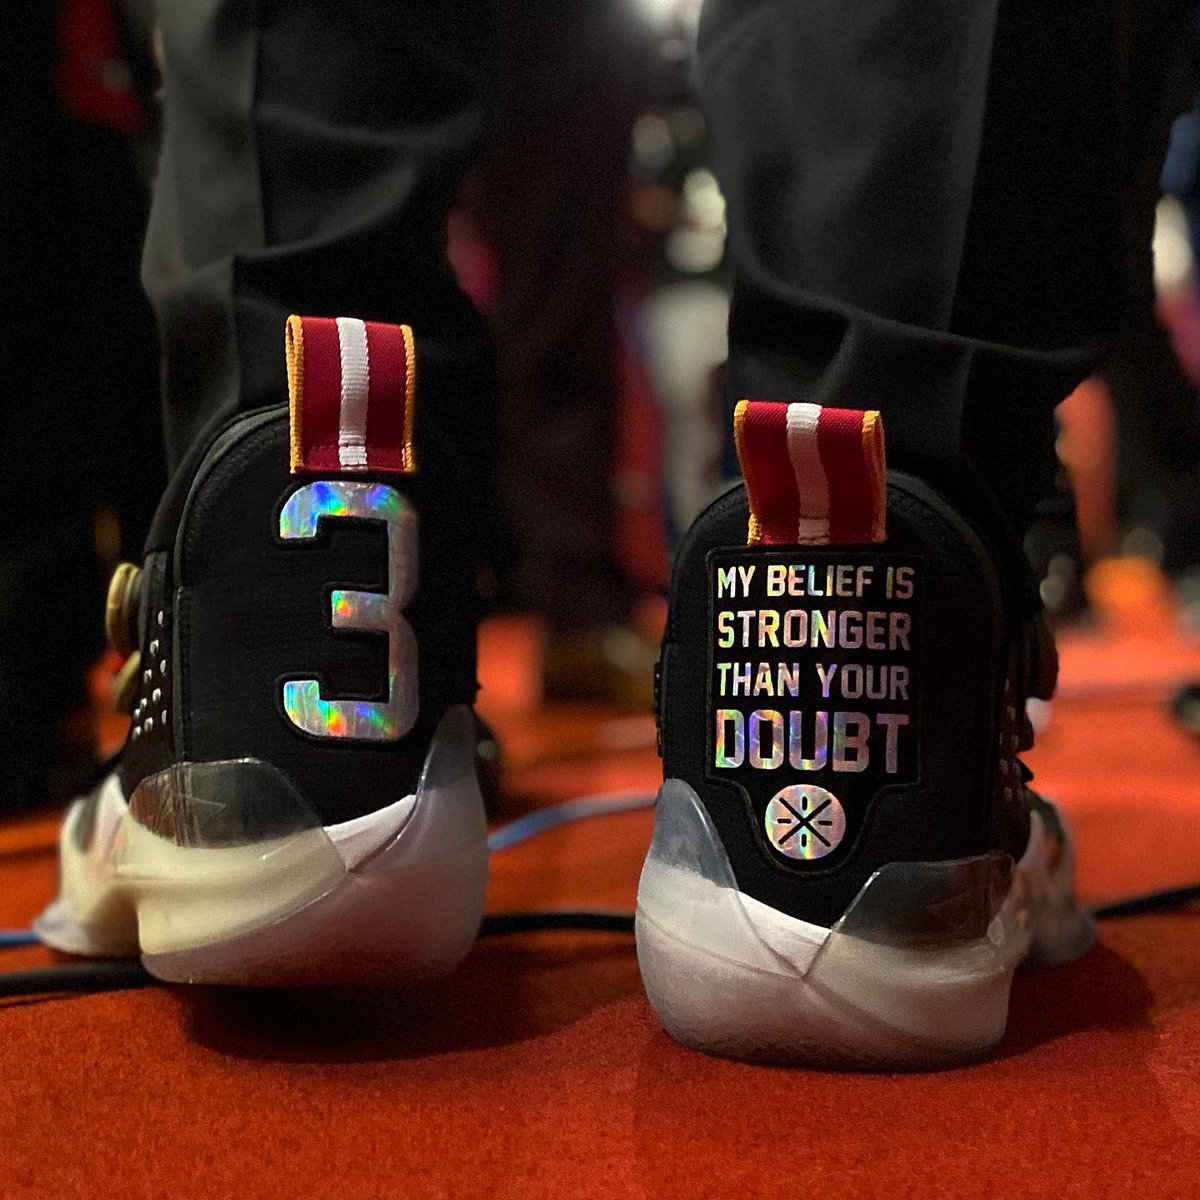 My Belief Is Stronger Than Your Doubt! • @DwyaneWade #L3GACY